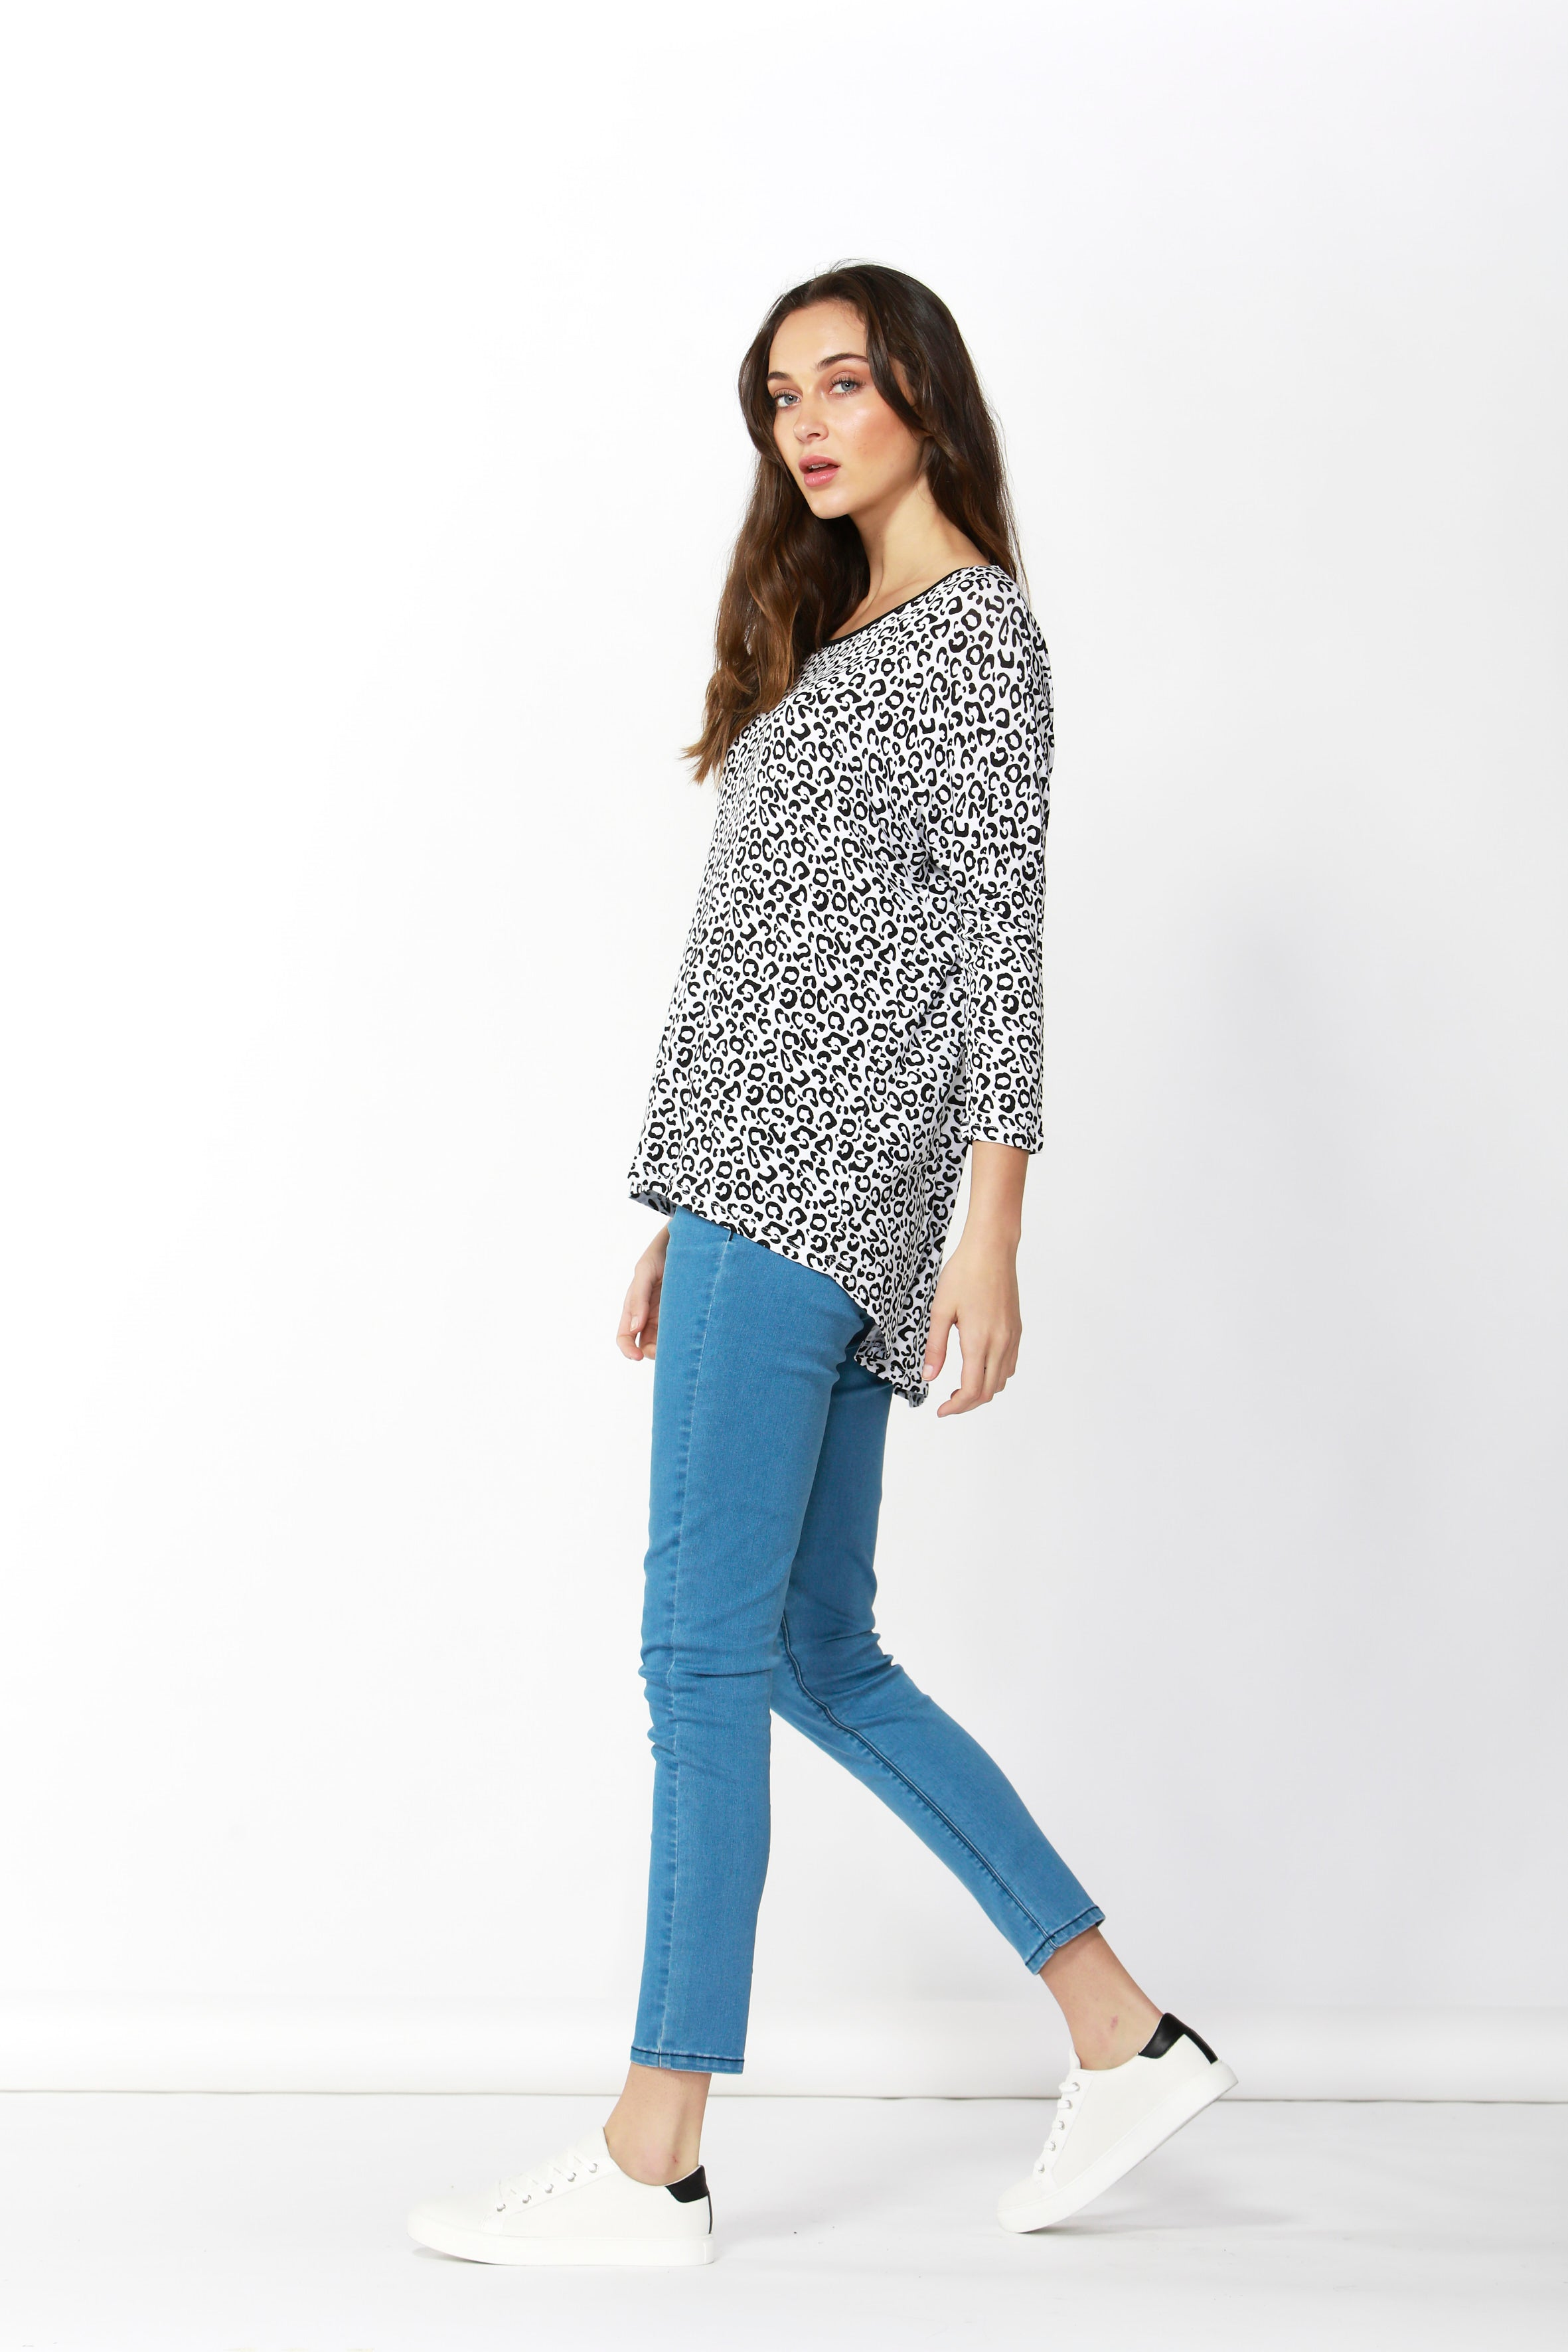 Milan 3/4 Sleeve Top - White Leopard Print